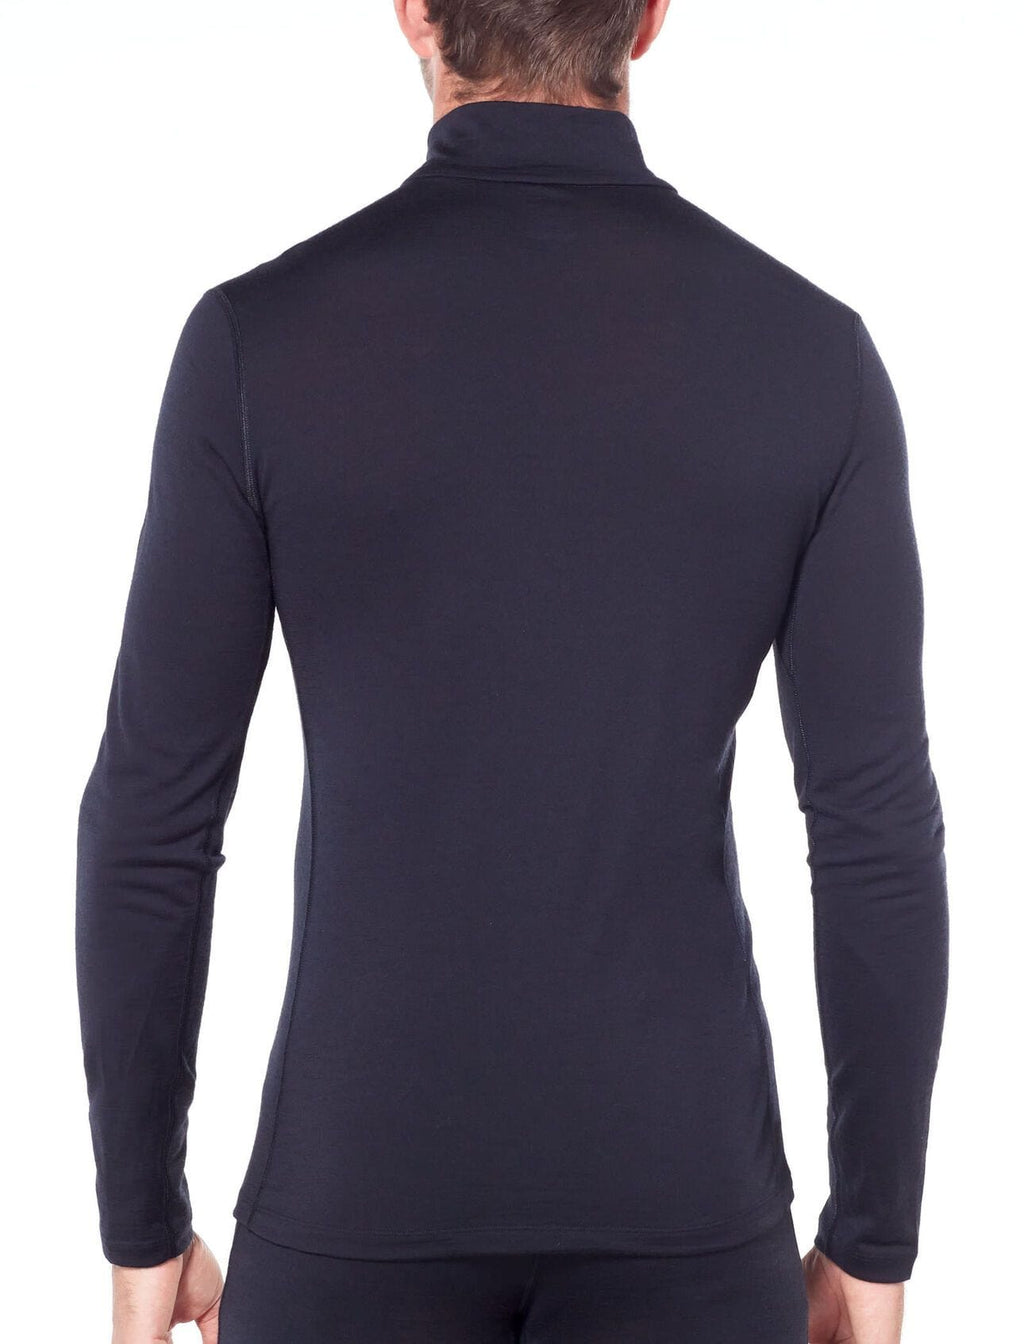 Men's 200 Oasis LS Half-Zip